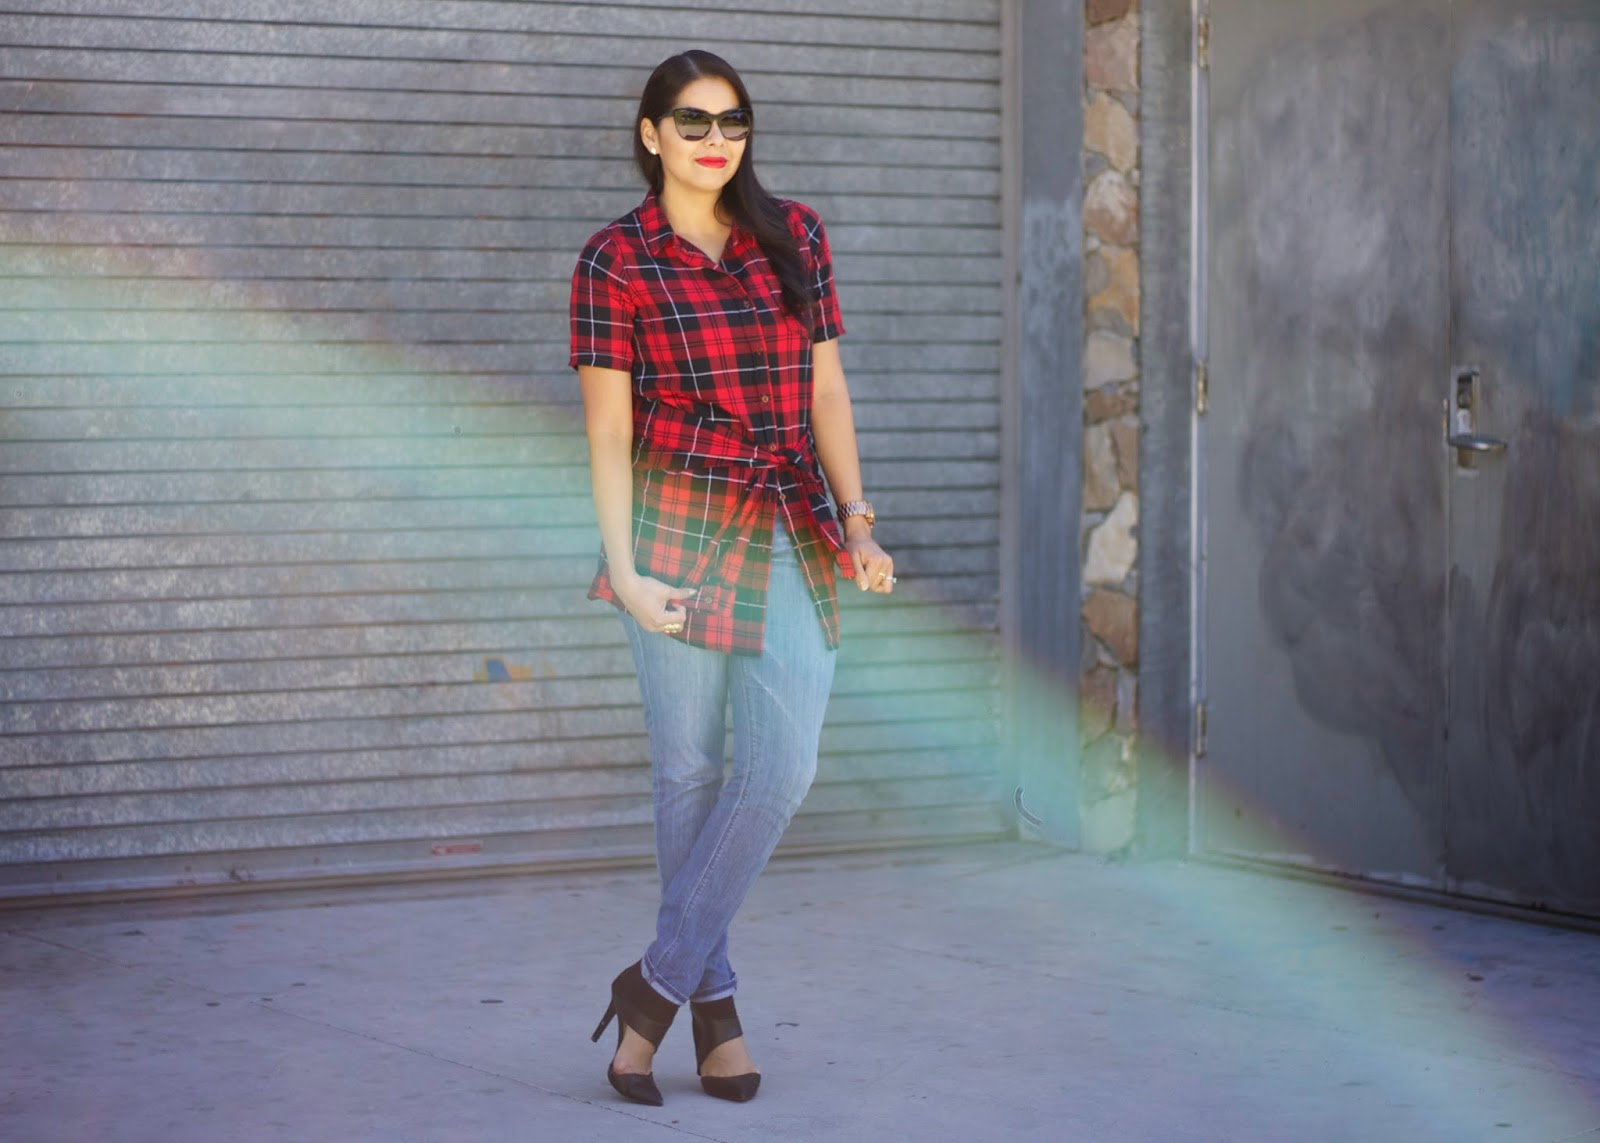 How to wear Plaid and Jeans, Plaid for Fall 2014, Edgy Fall 2014, Forever 21 plaid shirt,how to wear red plaid, f21 blogger, Hudson gia jeans, black cateye sunnies, san diego fashion blogger, how to wear red plaid for Fall, how to wear red plaid in winter